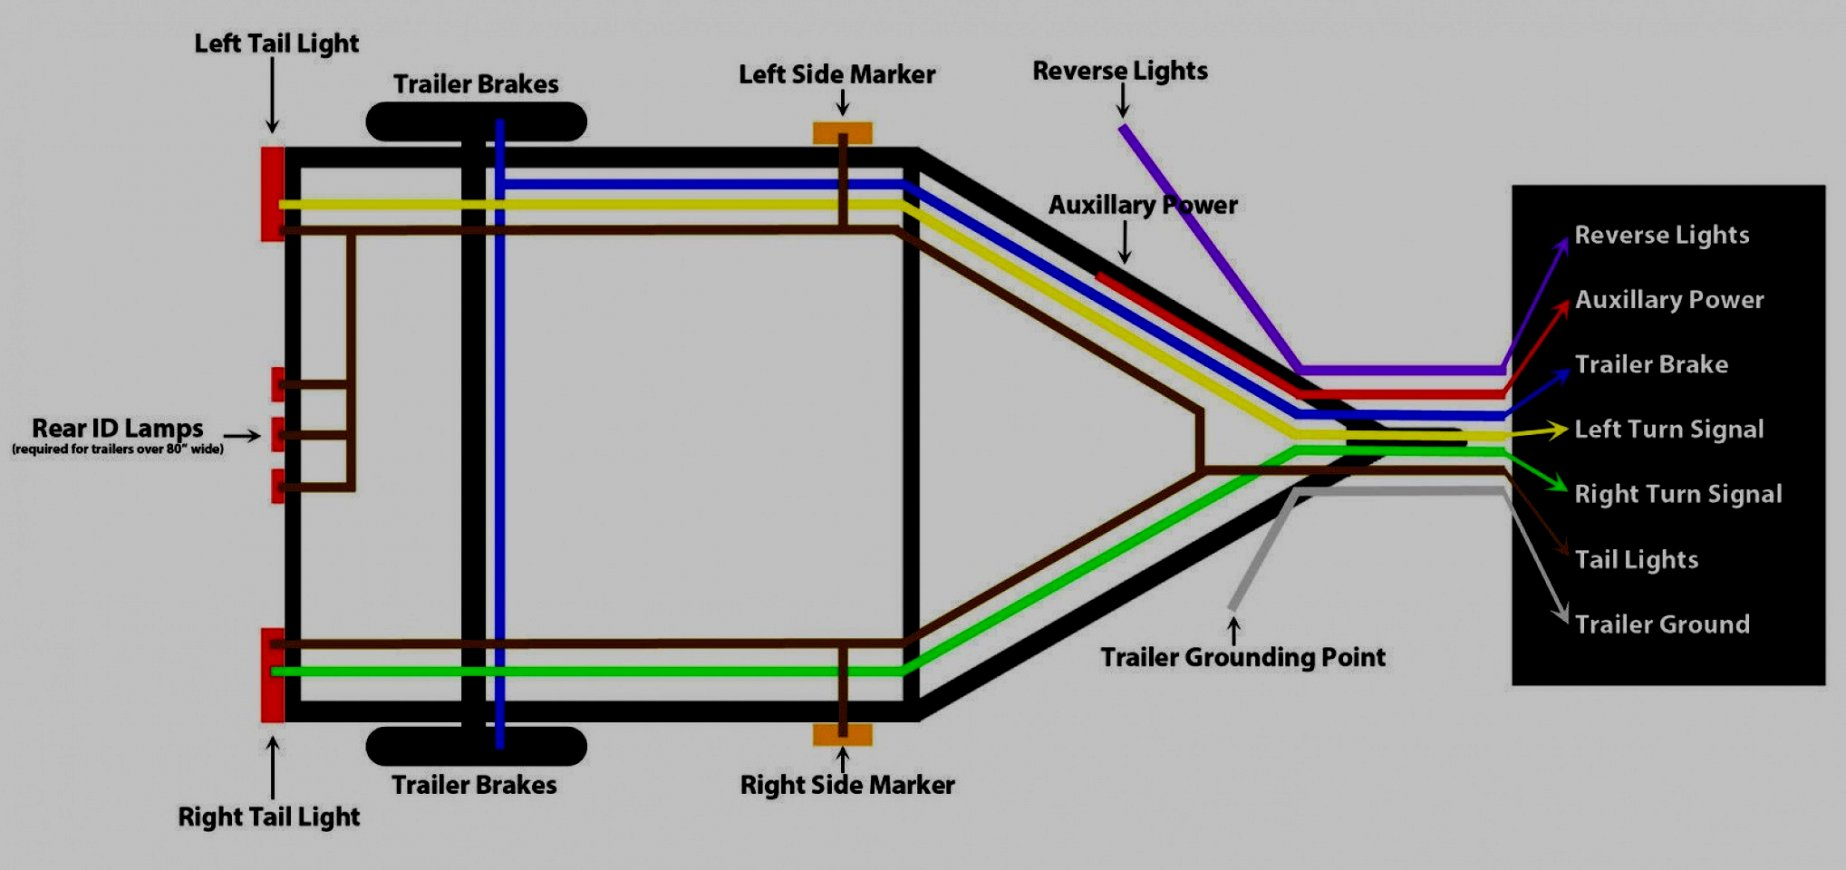 Car Trailer Wiring Diagram Australia | Manual E-Books - Four Pole Trailer Wiring Diagram